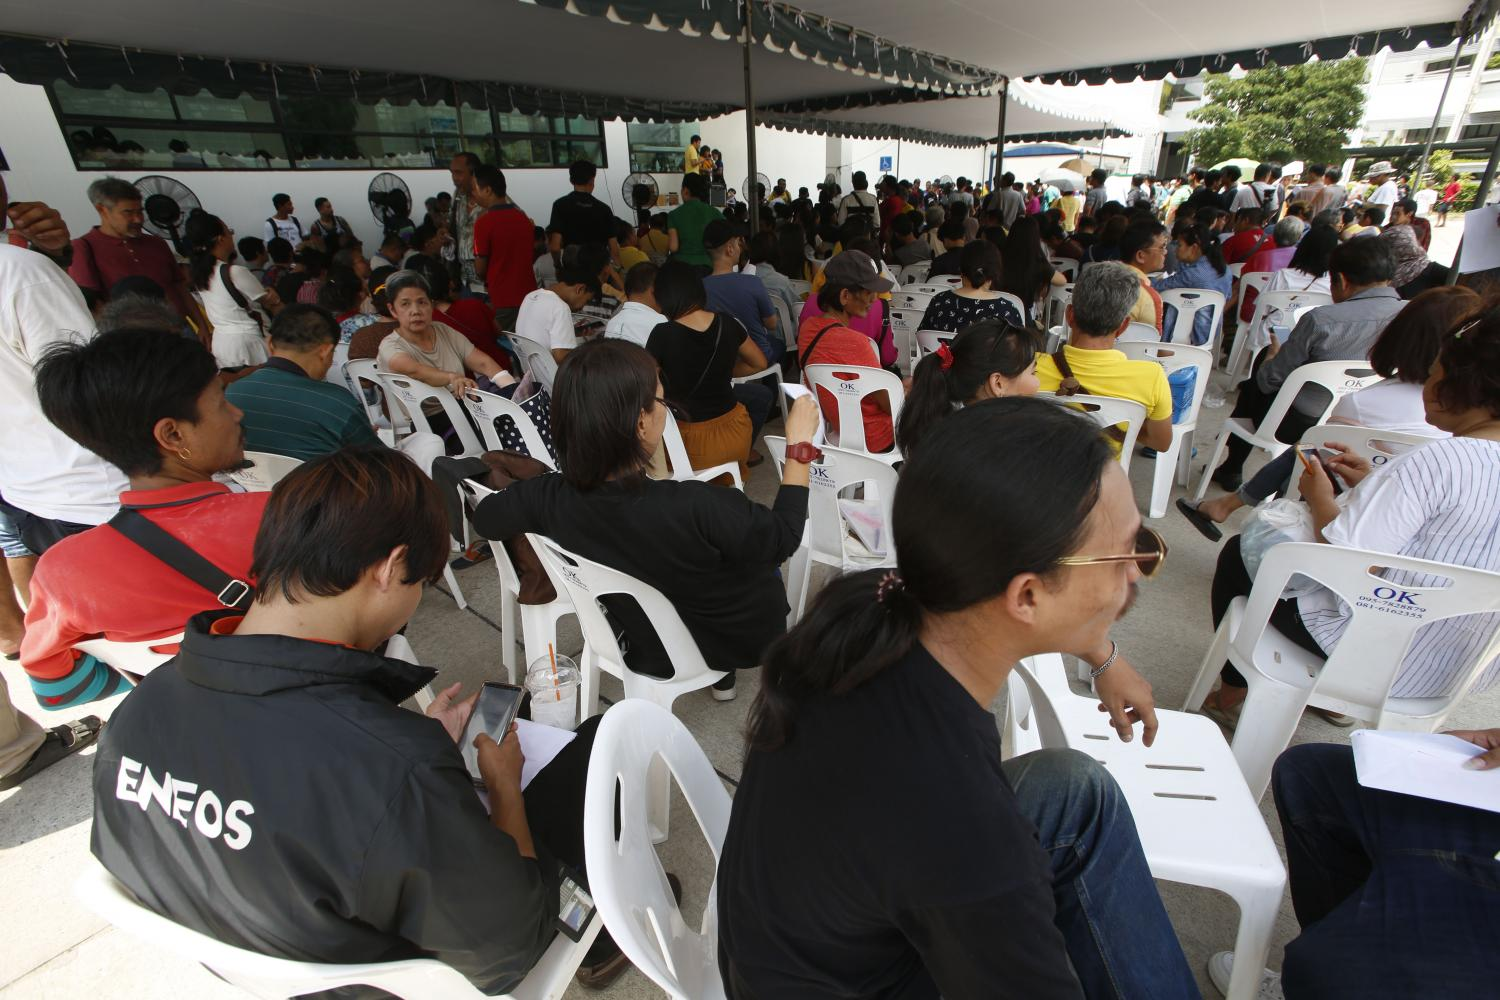 People pack the Public Health Ministry's One Stop Service Centre to register for an amnesty on marijuana possession for medical purposes. The registration deadline expired on Tuesday. (Photo by Pornprom Satrabhaya)